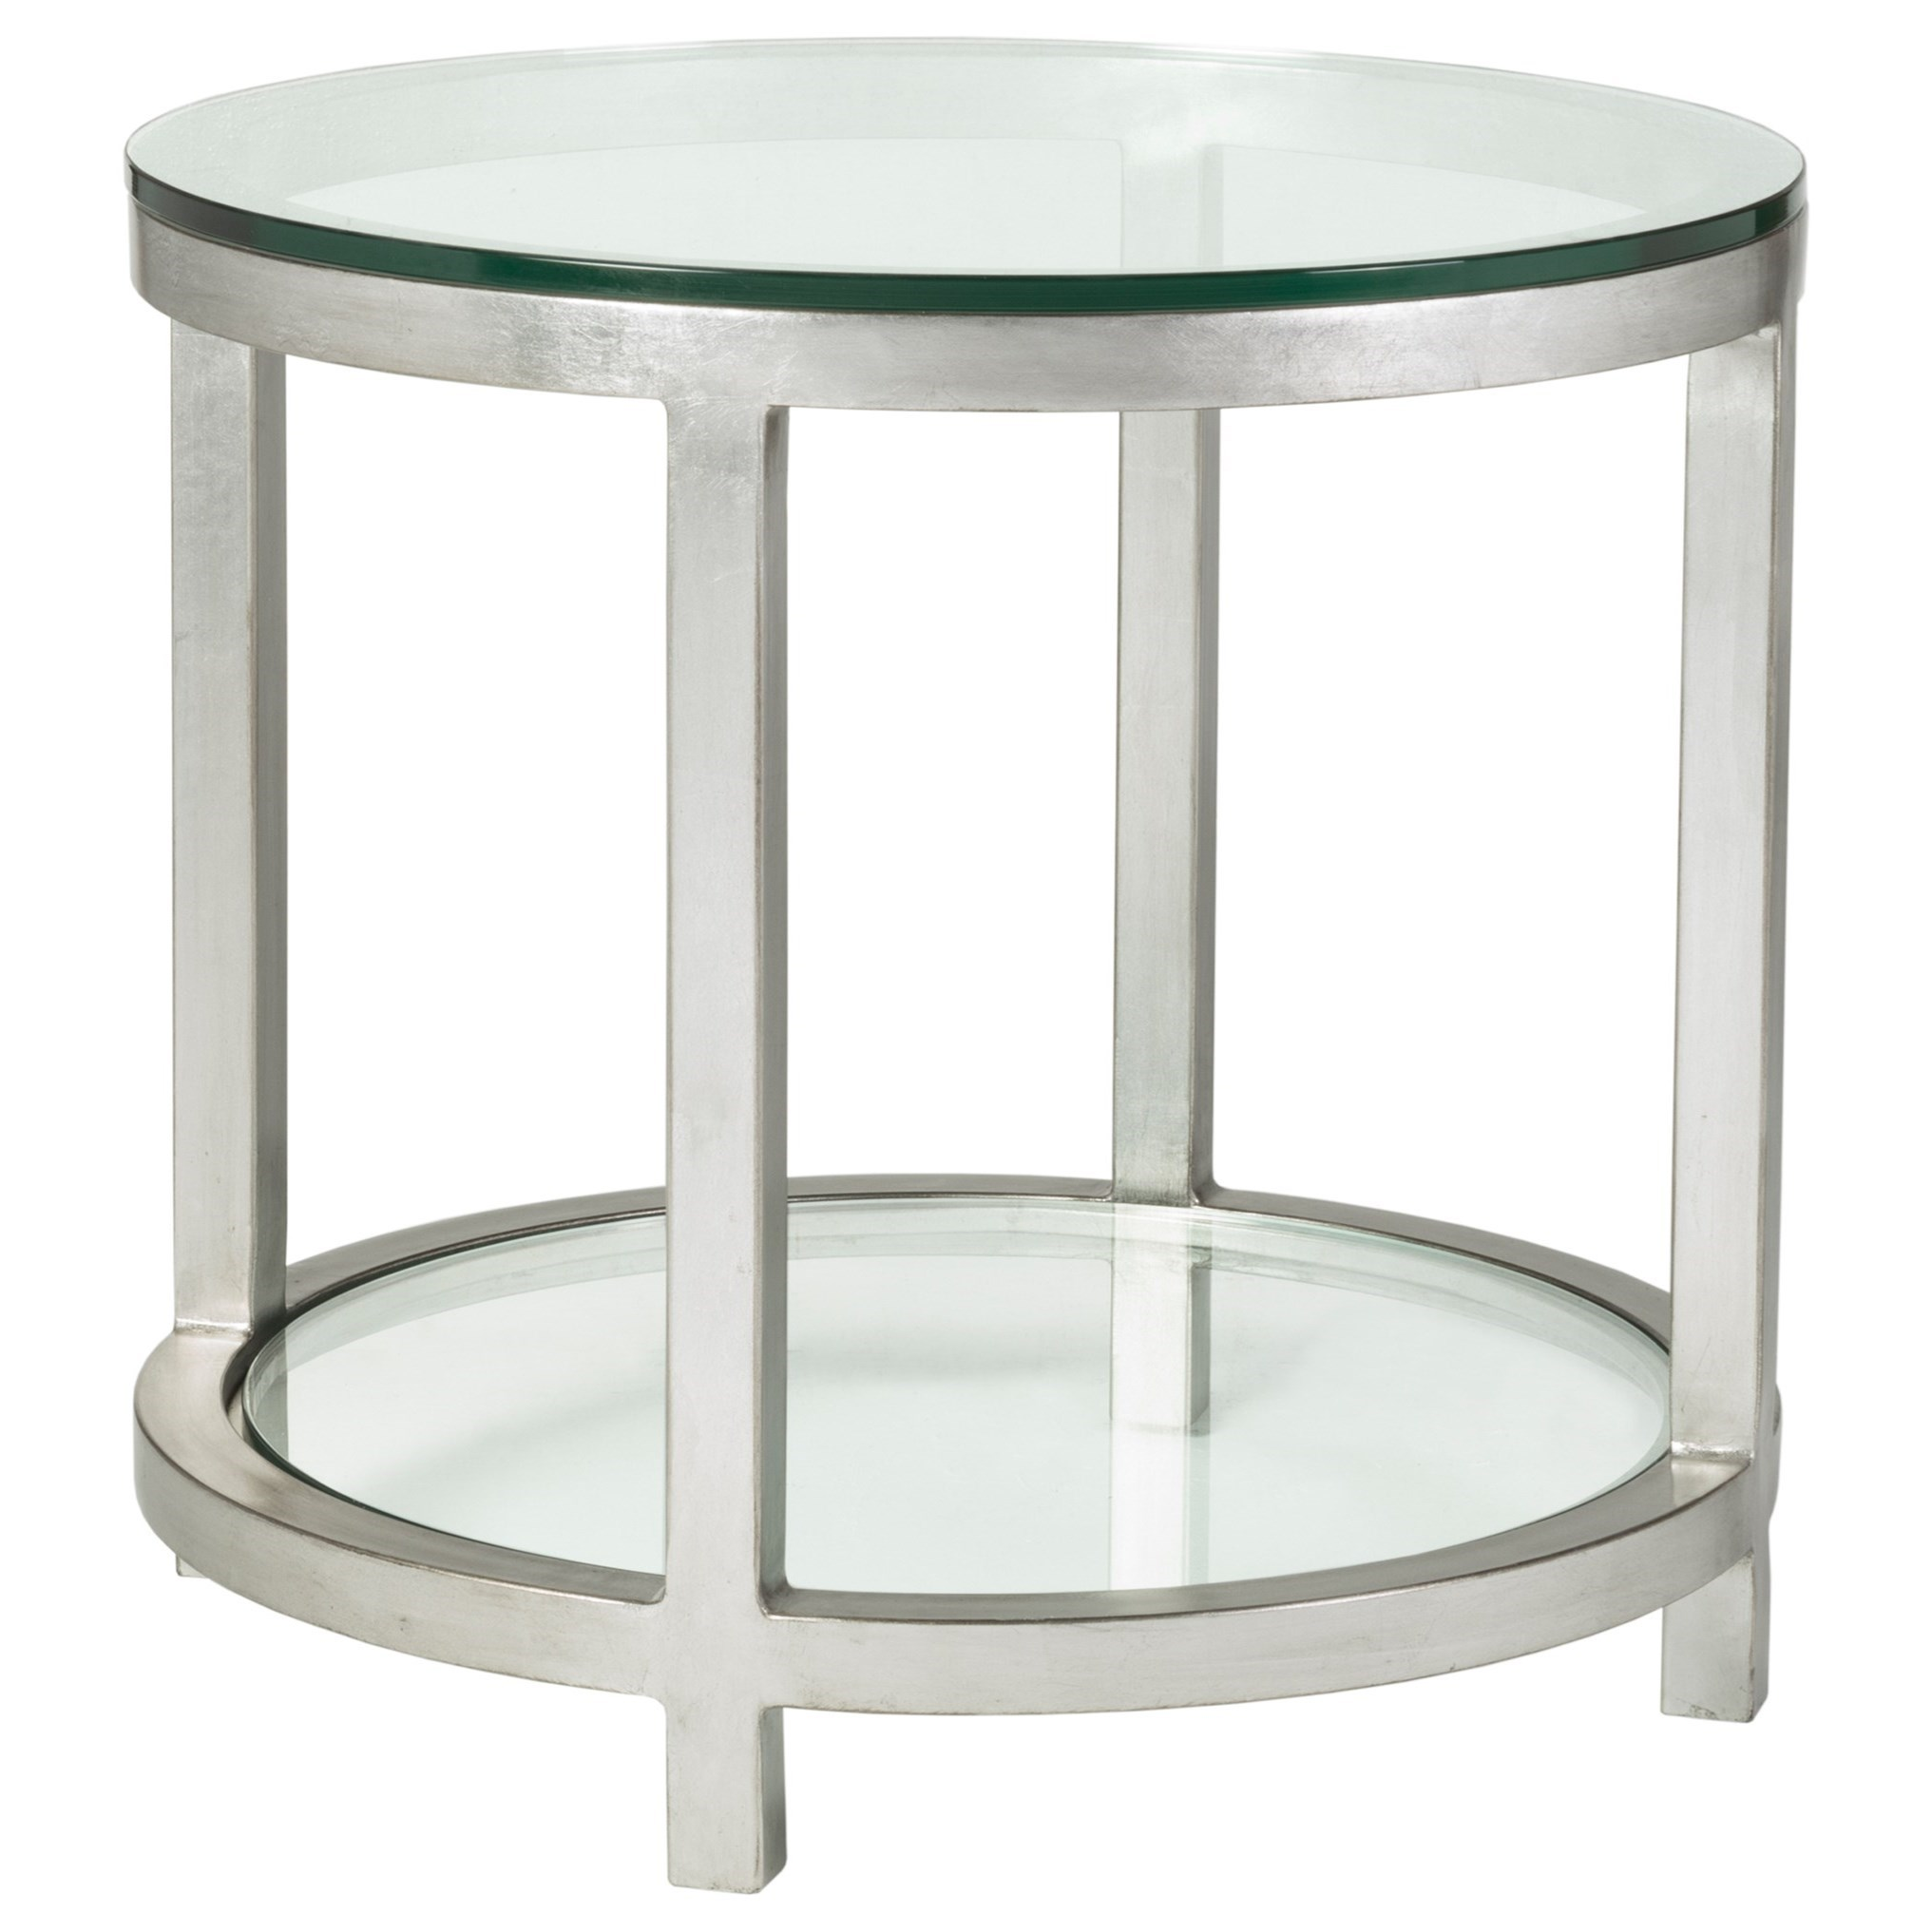 Artistica Metal Per Se Round End Table by Artistica at Baer's Furniture